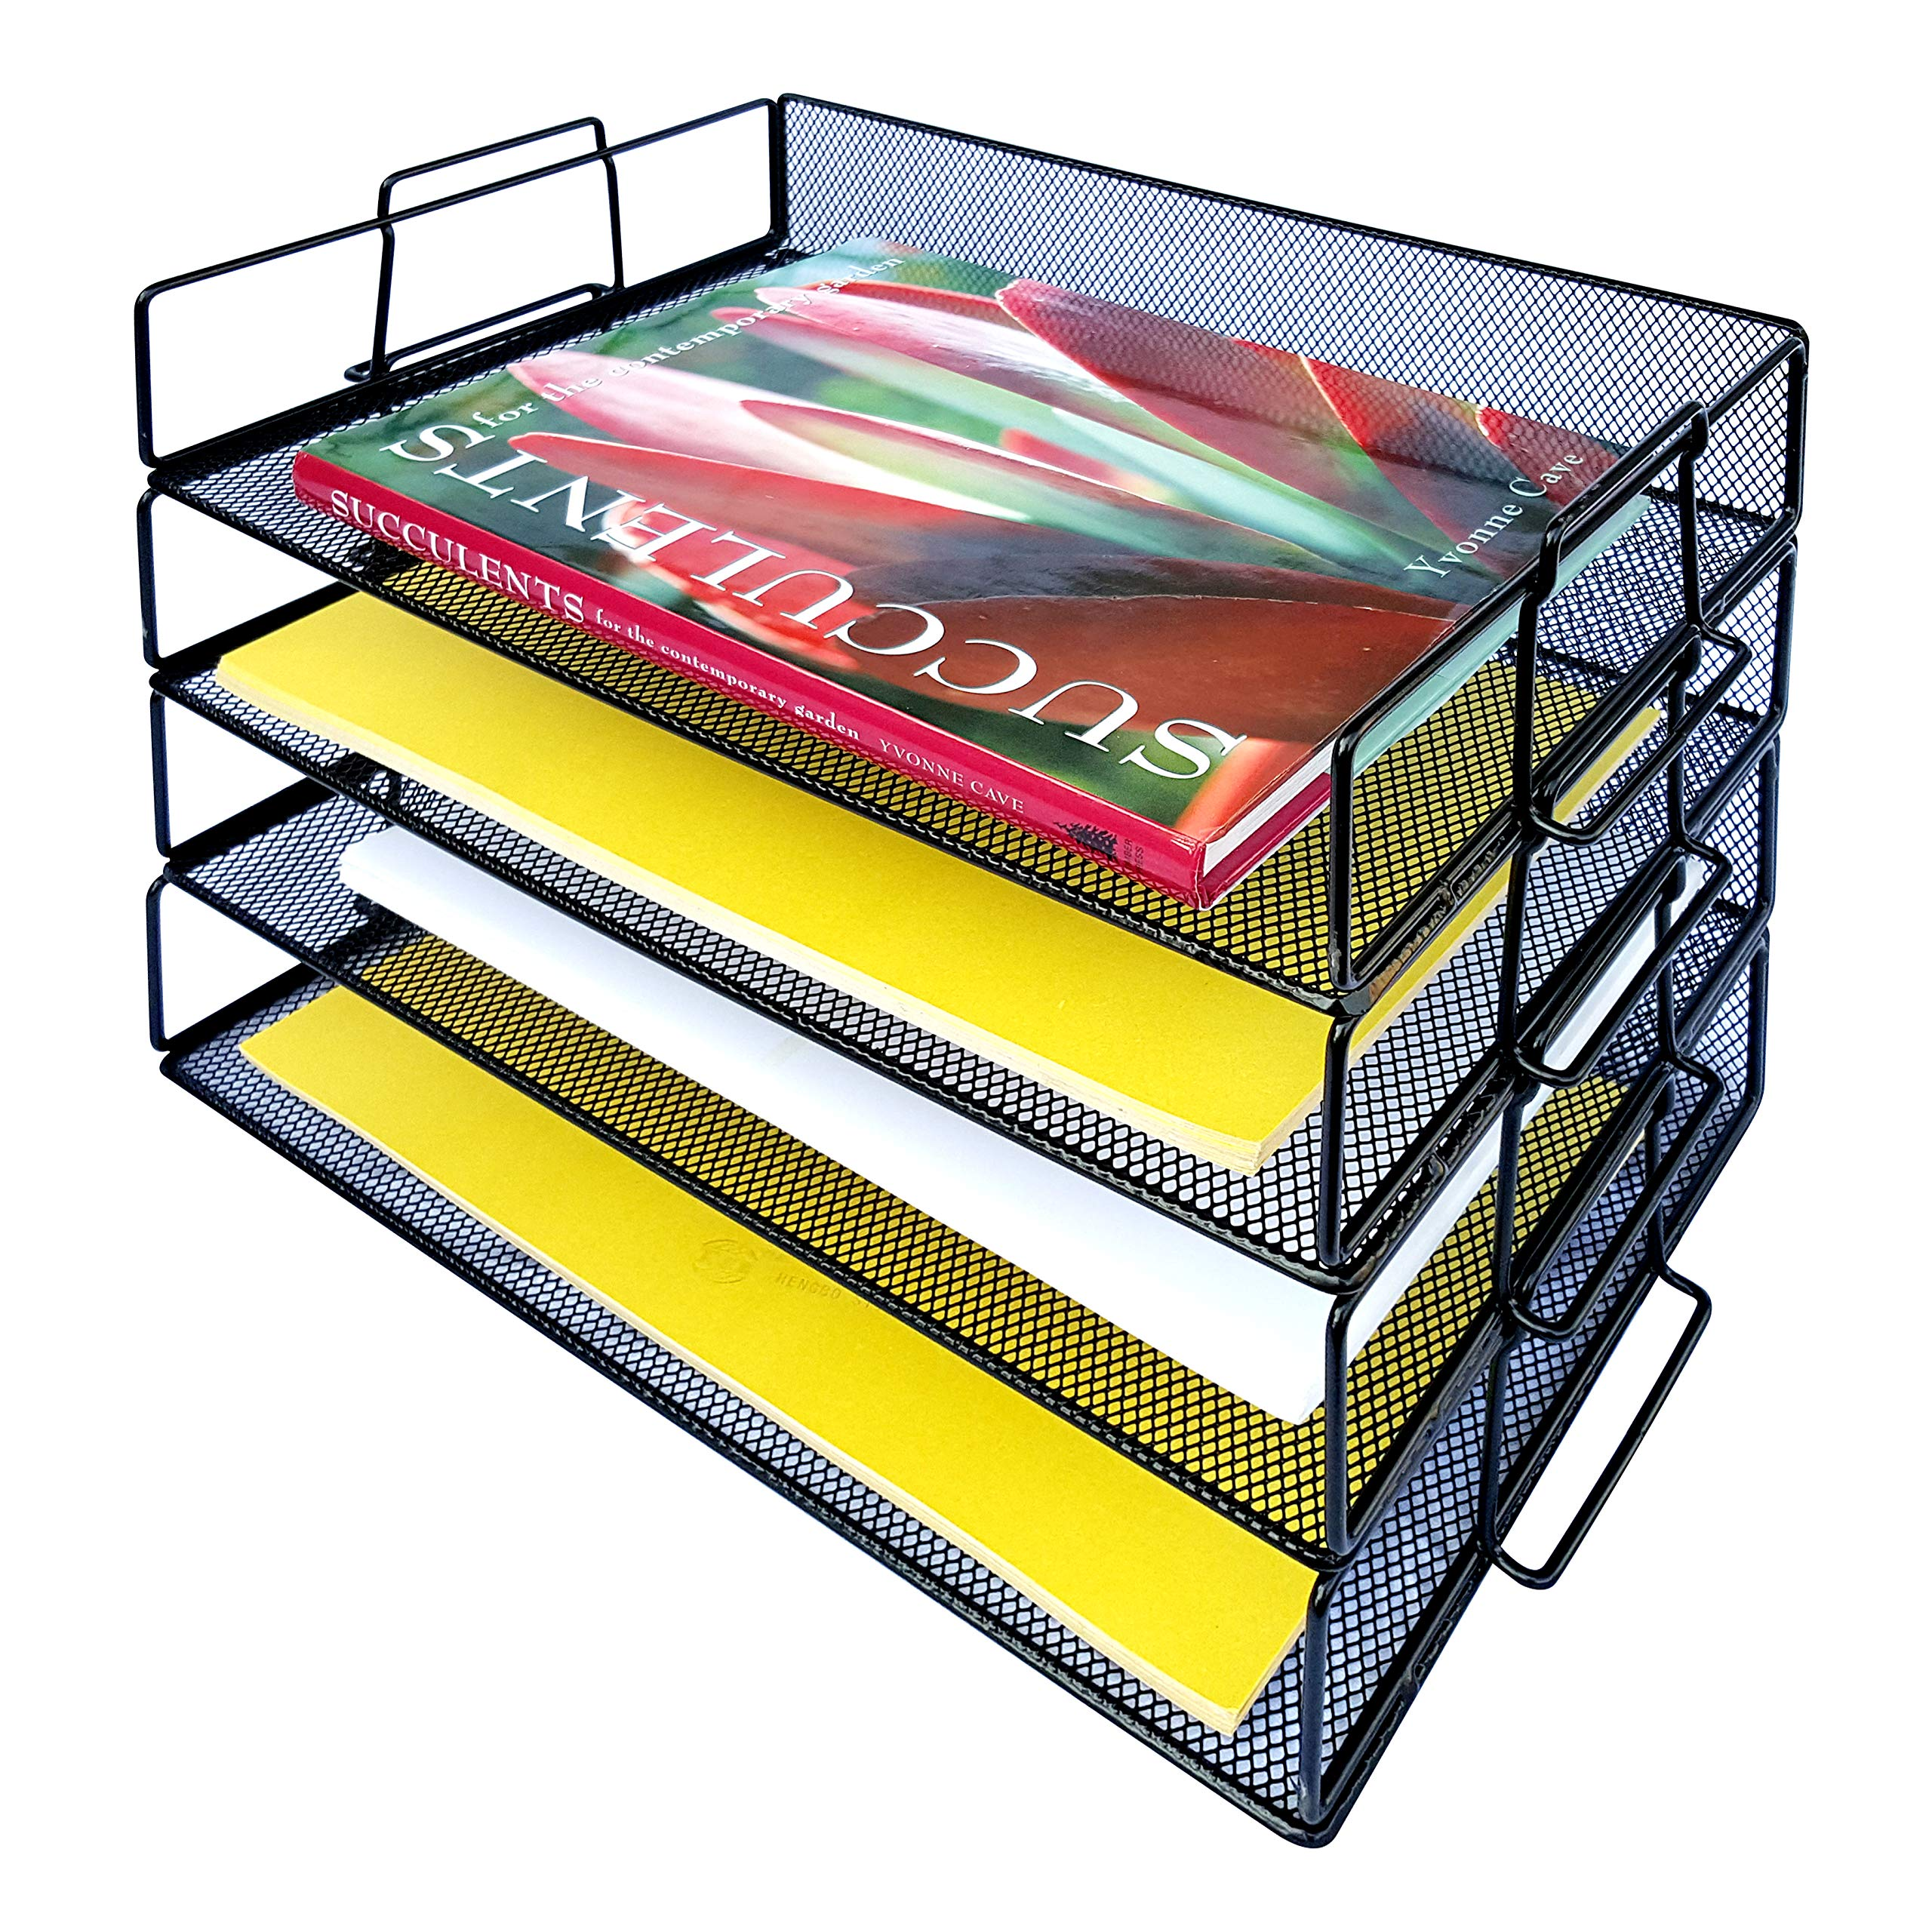 Coastal Colors 4 Tier Mesh Desk Organizer Stackable Trays to Organize Paper, Stationary, Documents, Files. Perfect Paperwork Filing and Organization Inbox for Home Office Classroom Cubicle Black by Coastal Colors